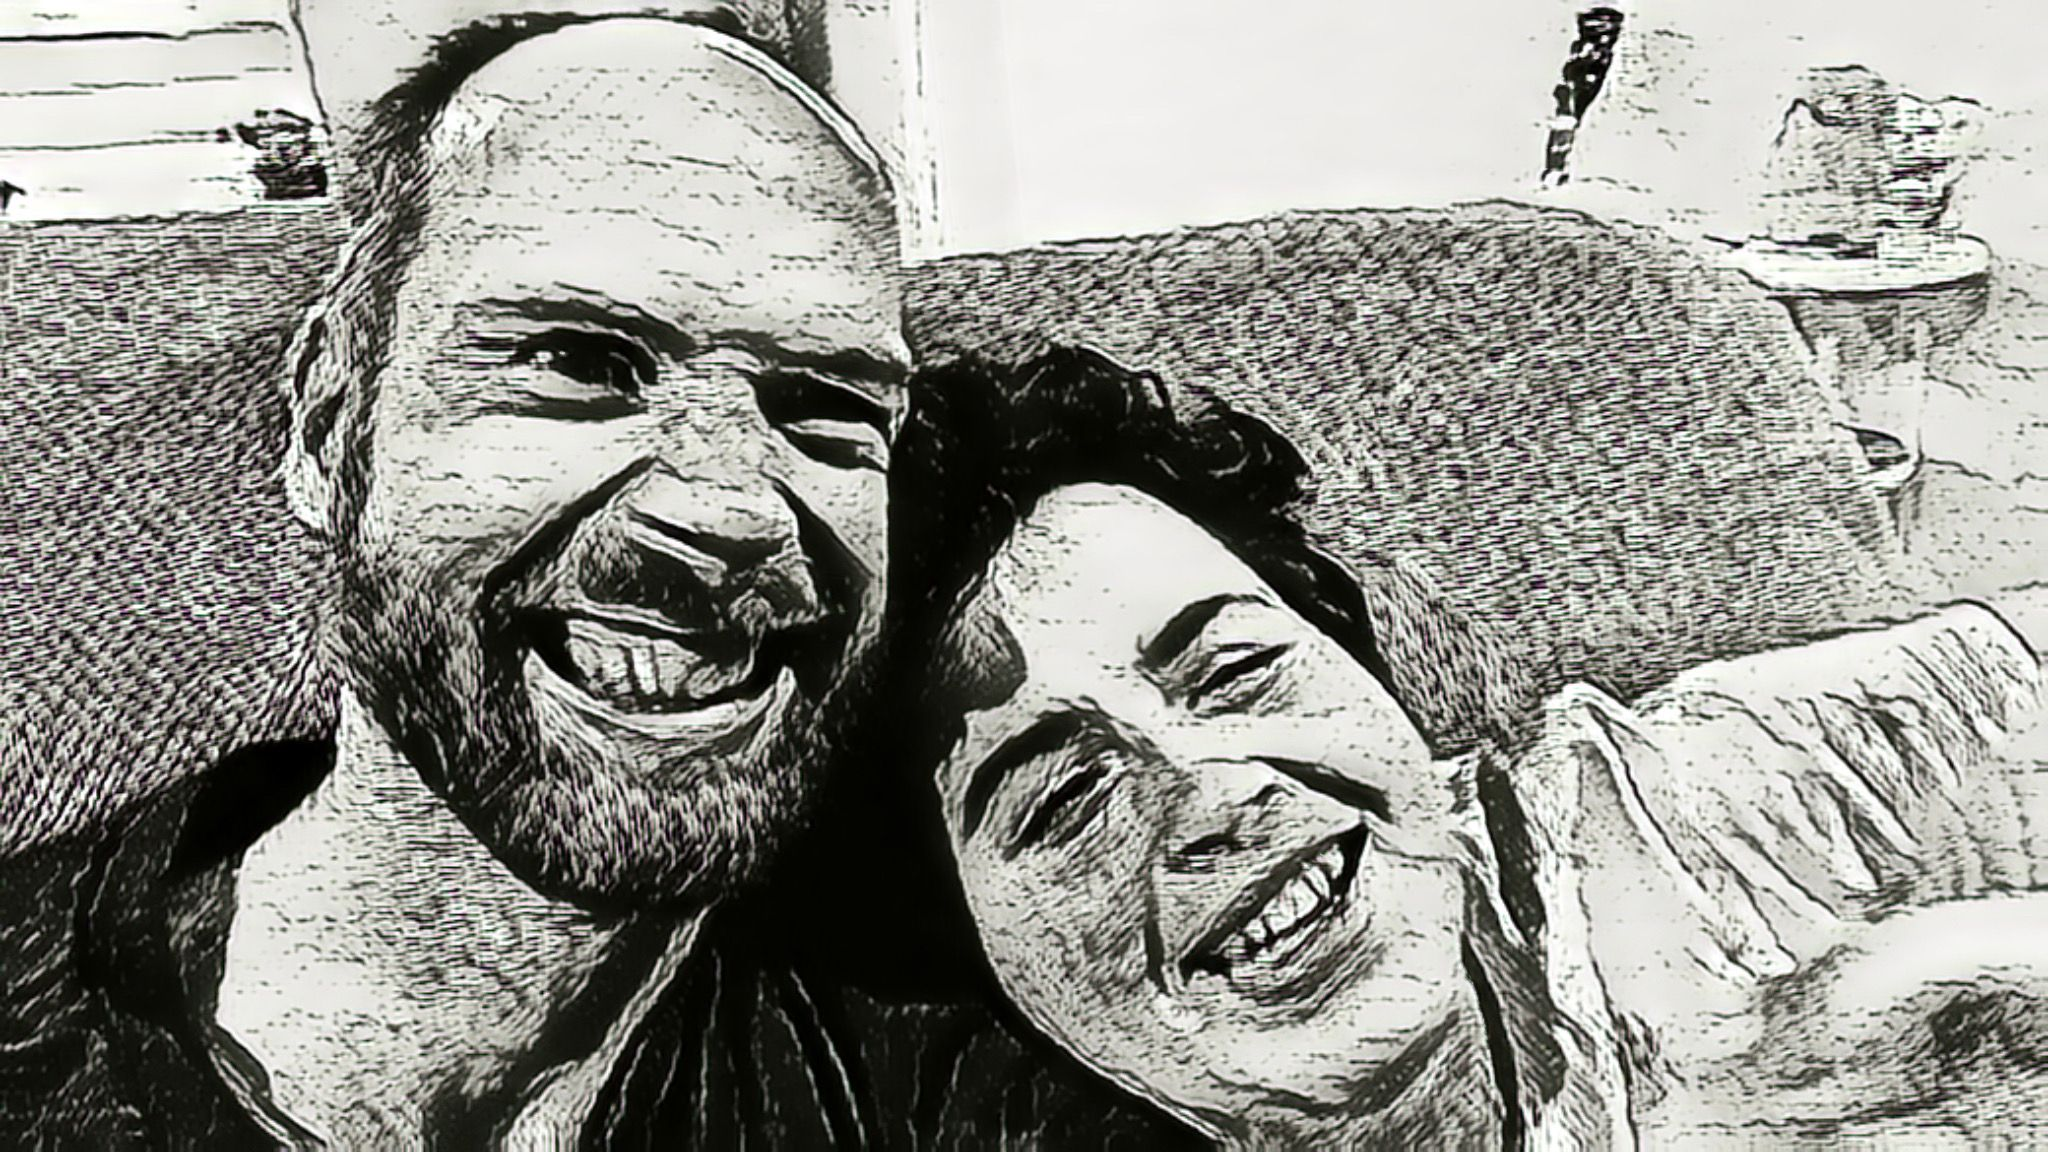 One last photo of Lily and me, this is another pencil-style drawing but in black and white, and we're both cracking up.